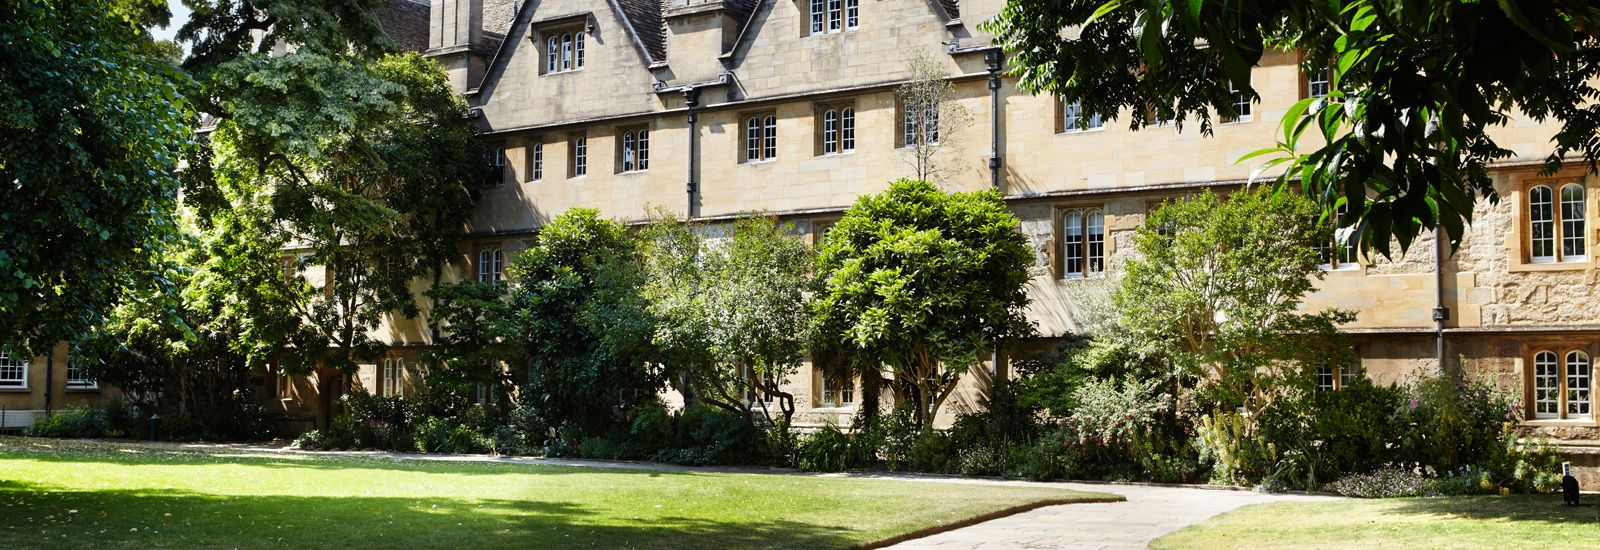 Trees and buildings in Wadham College